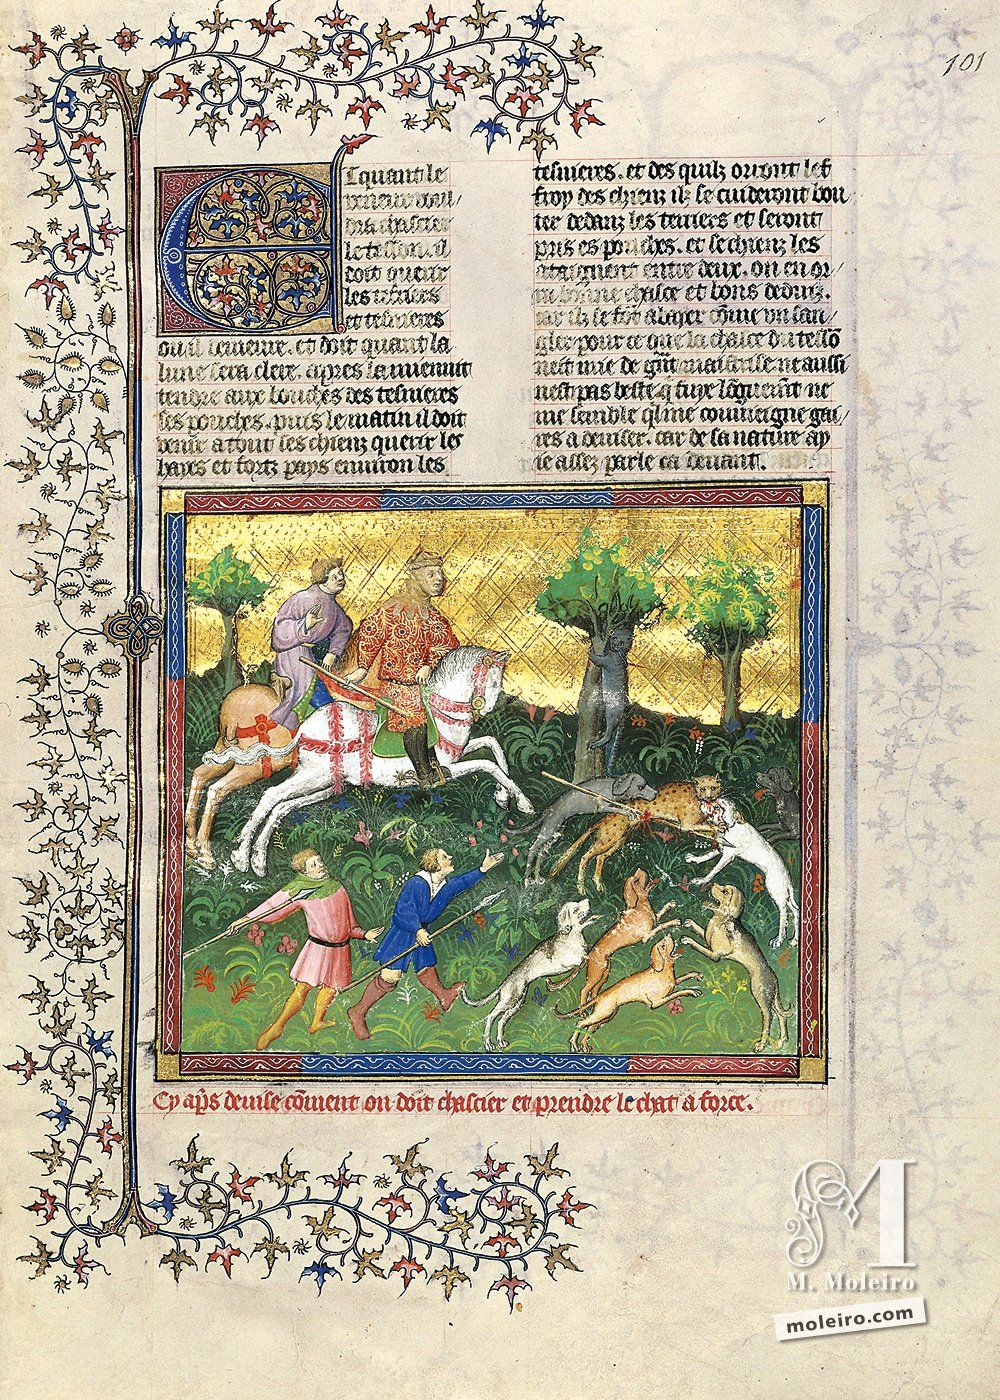 On how one should hunt and take down the cat by force - 101r. Livre de la Chasse, by Gaston Fébus (Français 616, Paris, early 15th c.) Bibliothèque nationale de France, Paris BnF